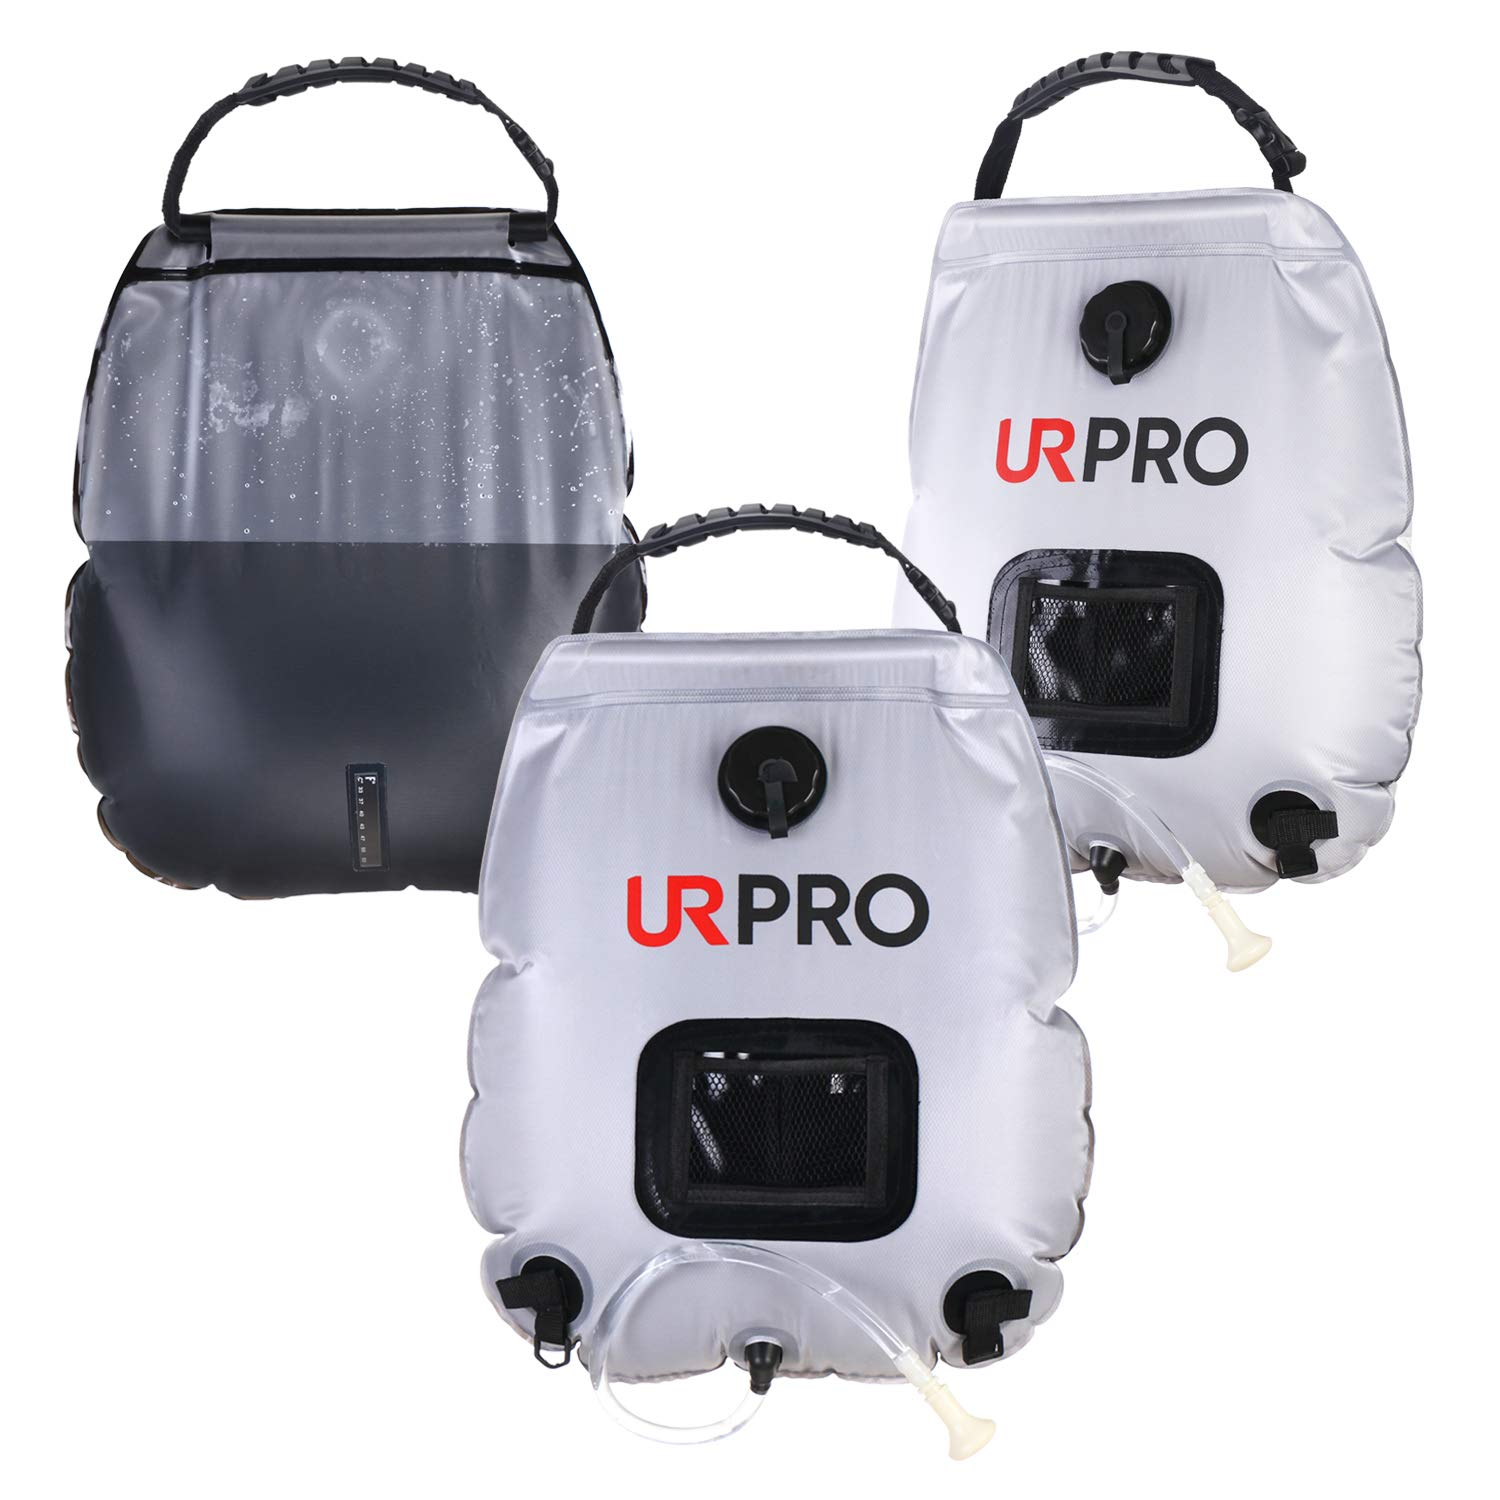 URPRO Solar Shower Bag Camping Shower Bag Hot Water with Temperature 45/°C Removable Hose on//Off Shower Head Hiking Climbing Summer Shower